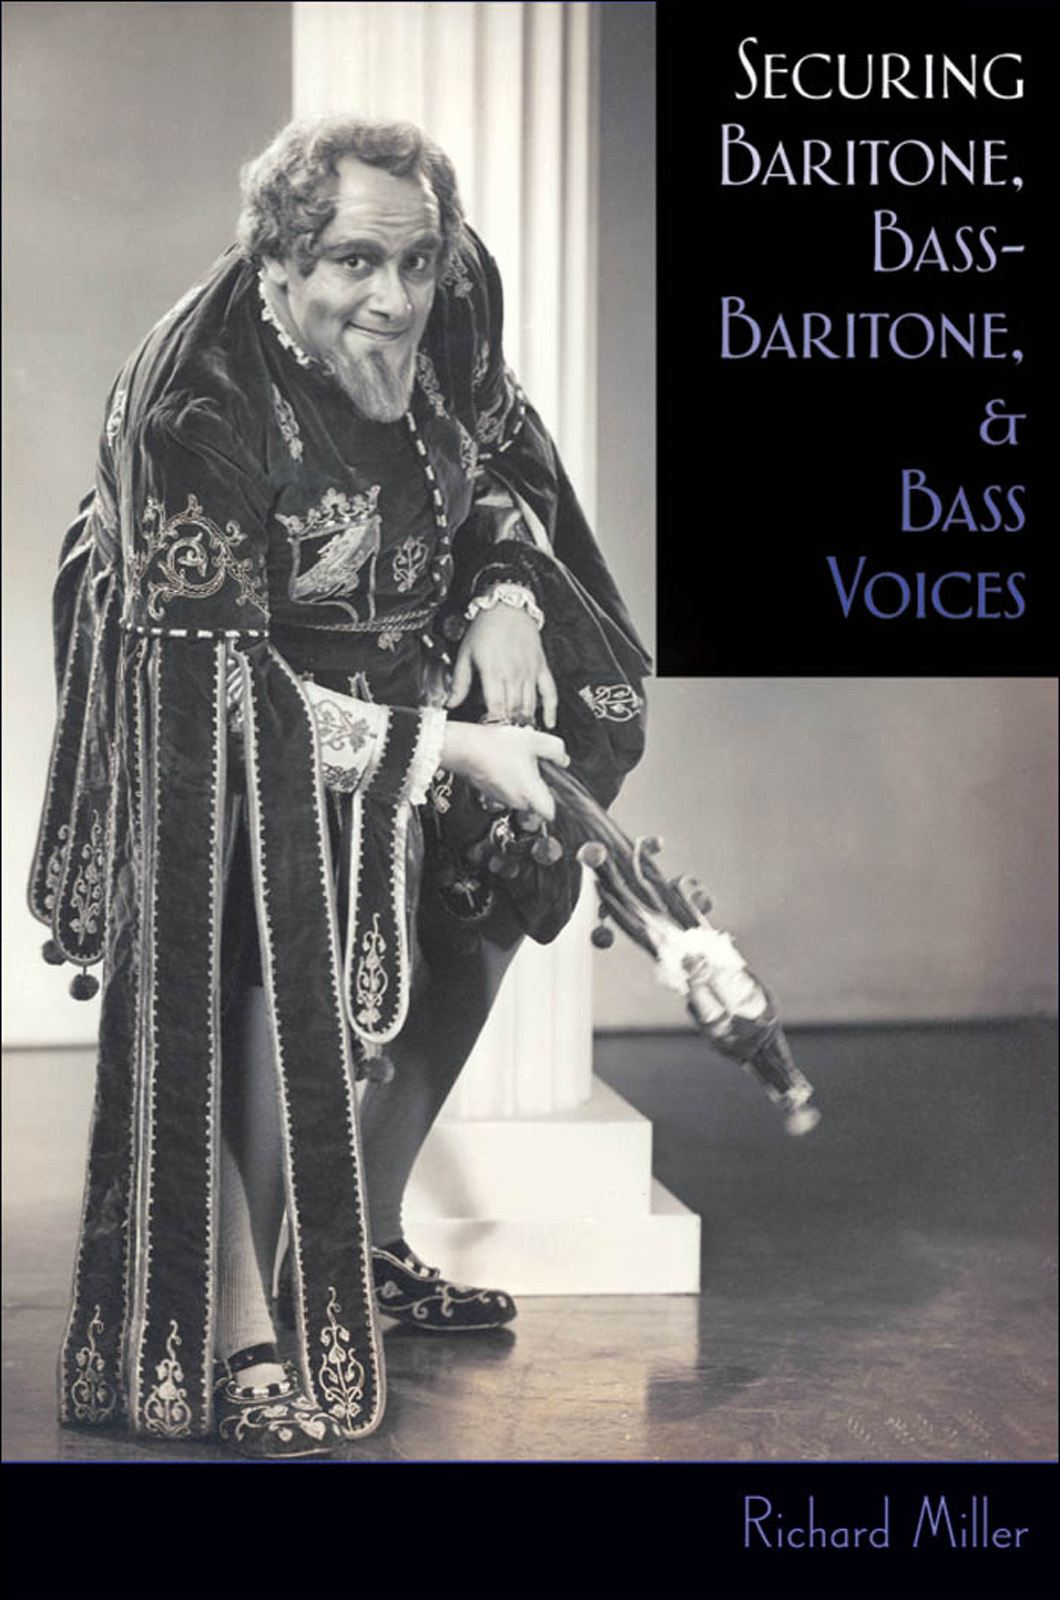 Securing Baritone Bass-Baritone and Bass Voices